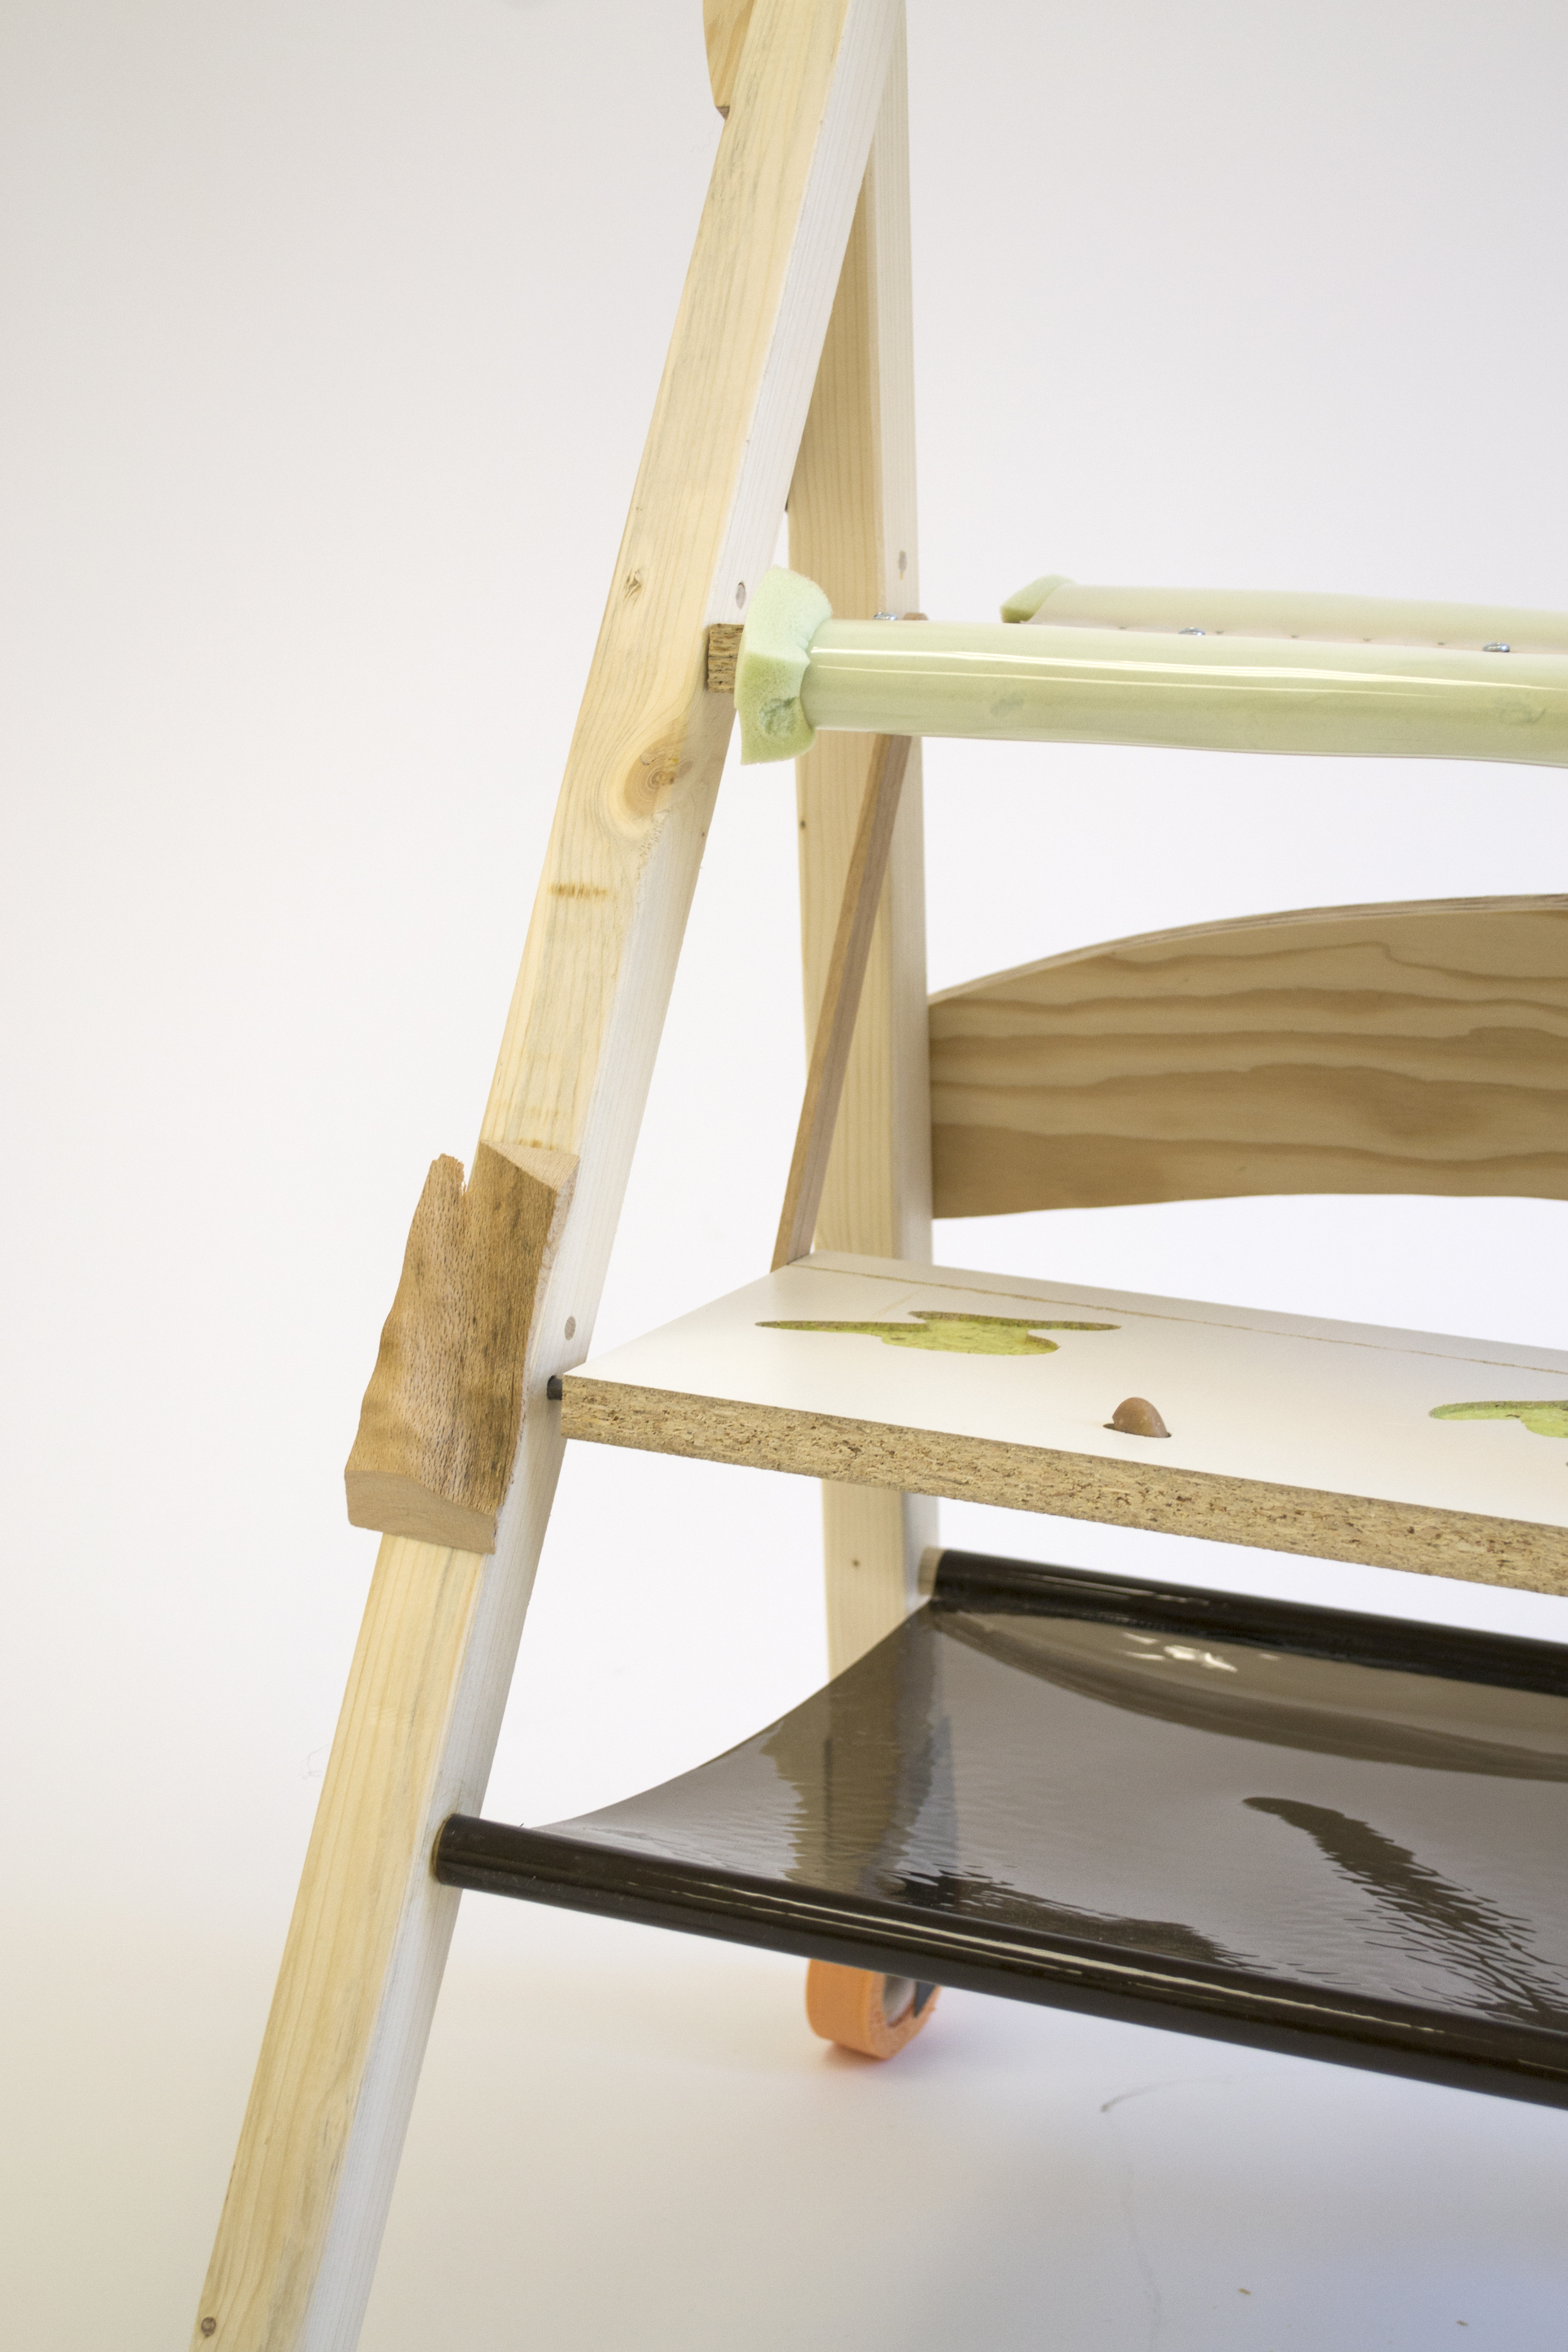 Untitled (Shelf) detail